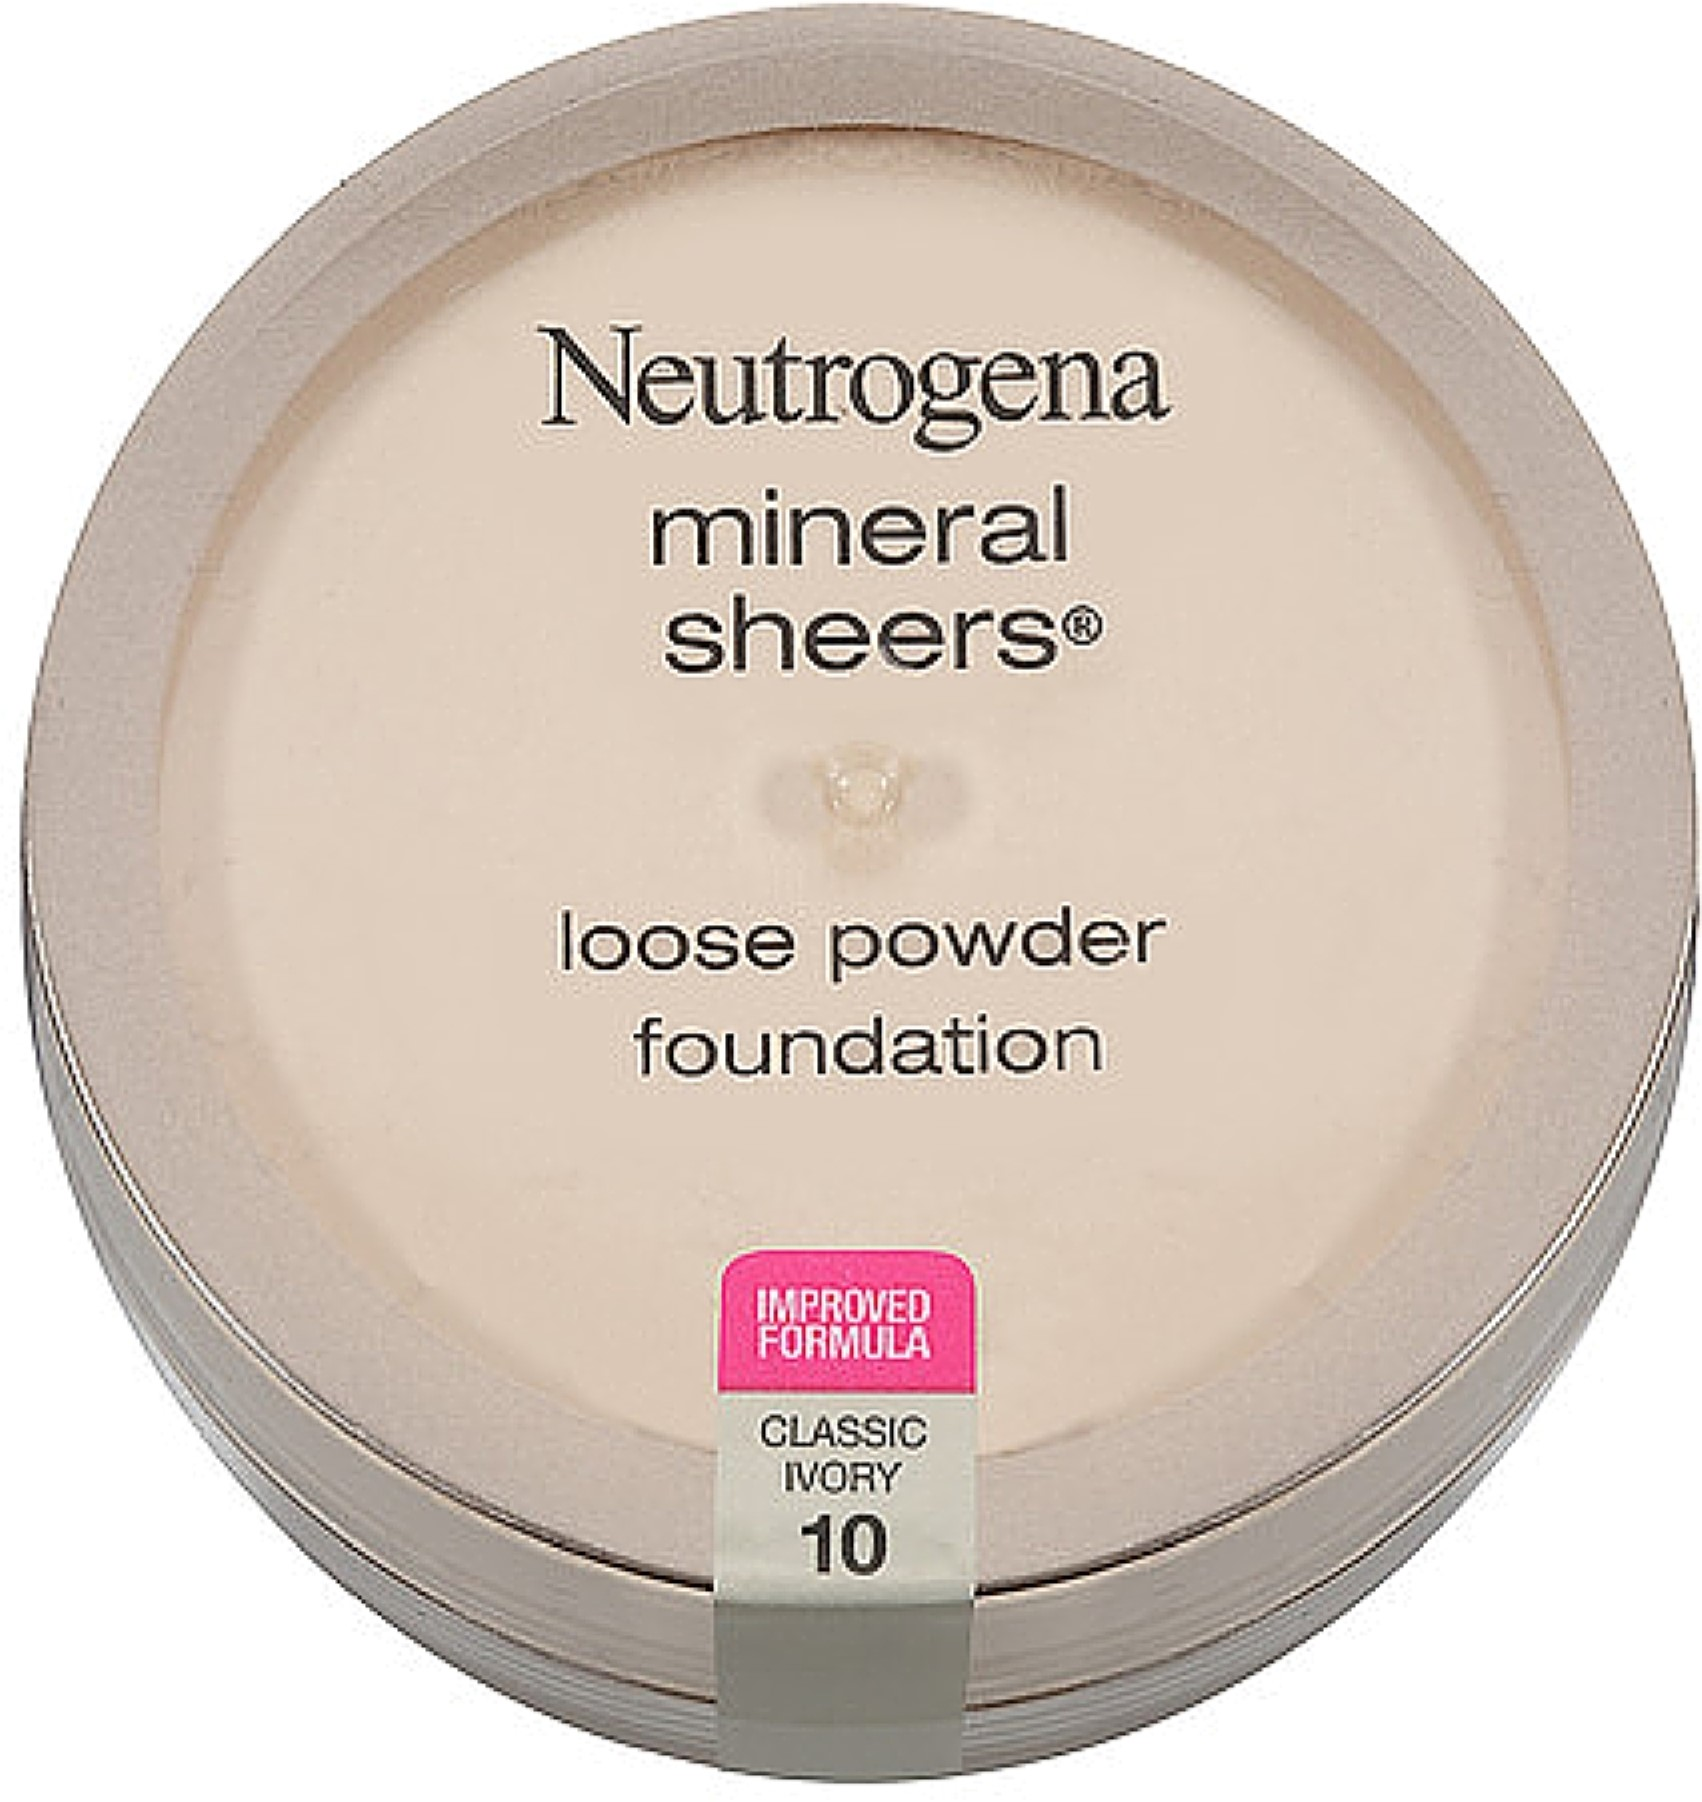 Neutrogena Mineral Sheers Loose Powder Foundation, Classic Ivory [10] 0.19 oz (Pack of 6)